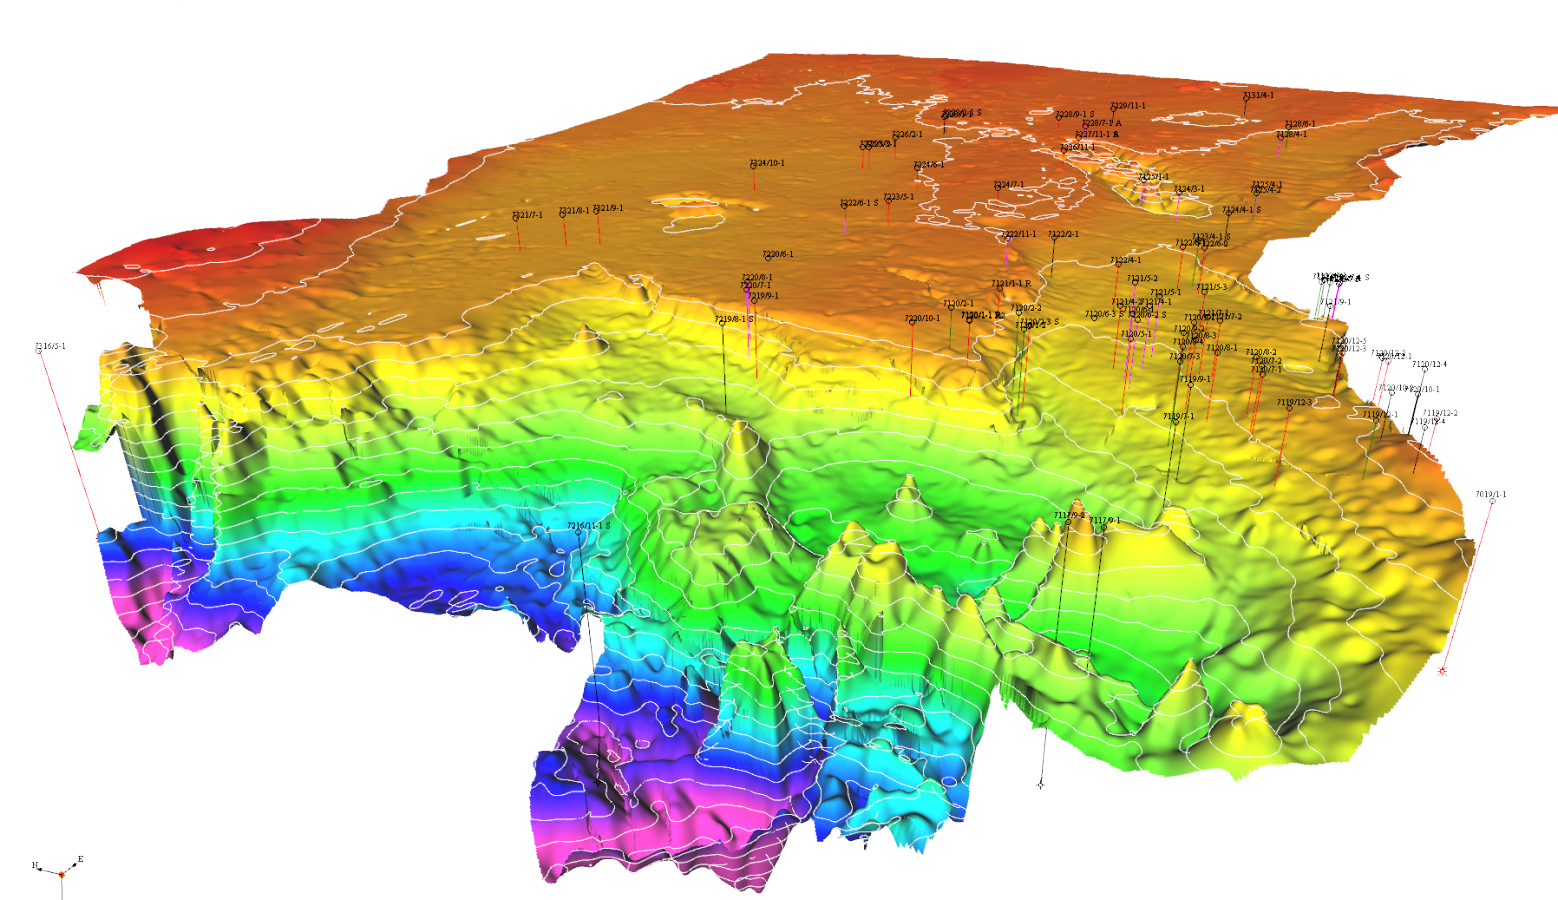 3D structure of the KT Unconformity